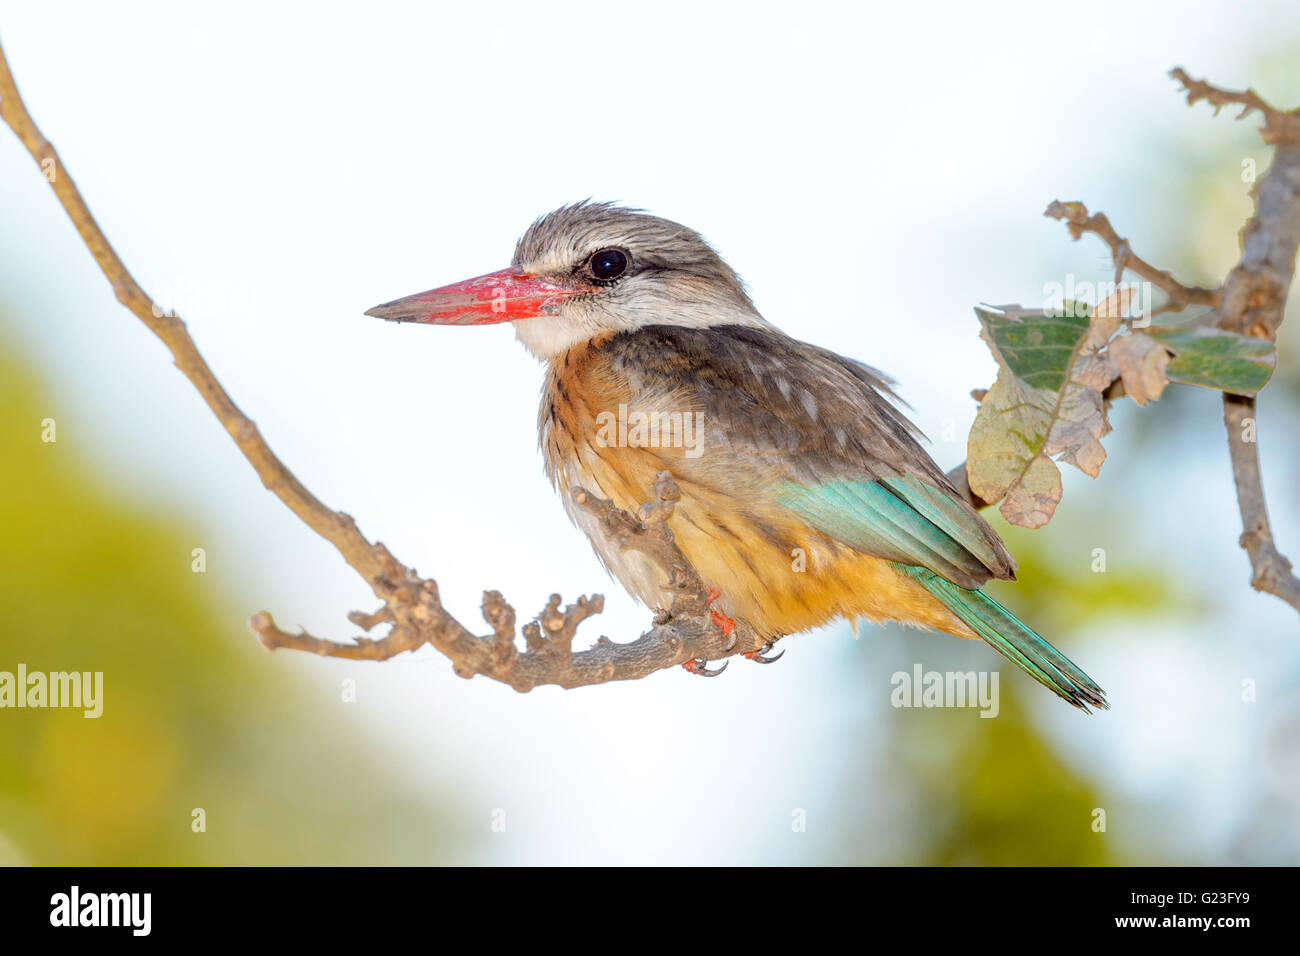 Brown-hooded kingfisher (Halcyon albiventris) on a twig, Kruger National Park, South Africa, Africa - Stock Image